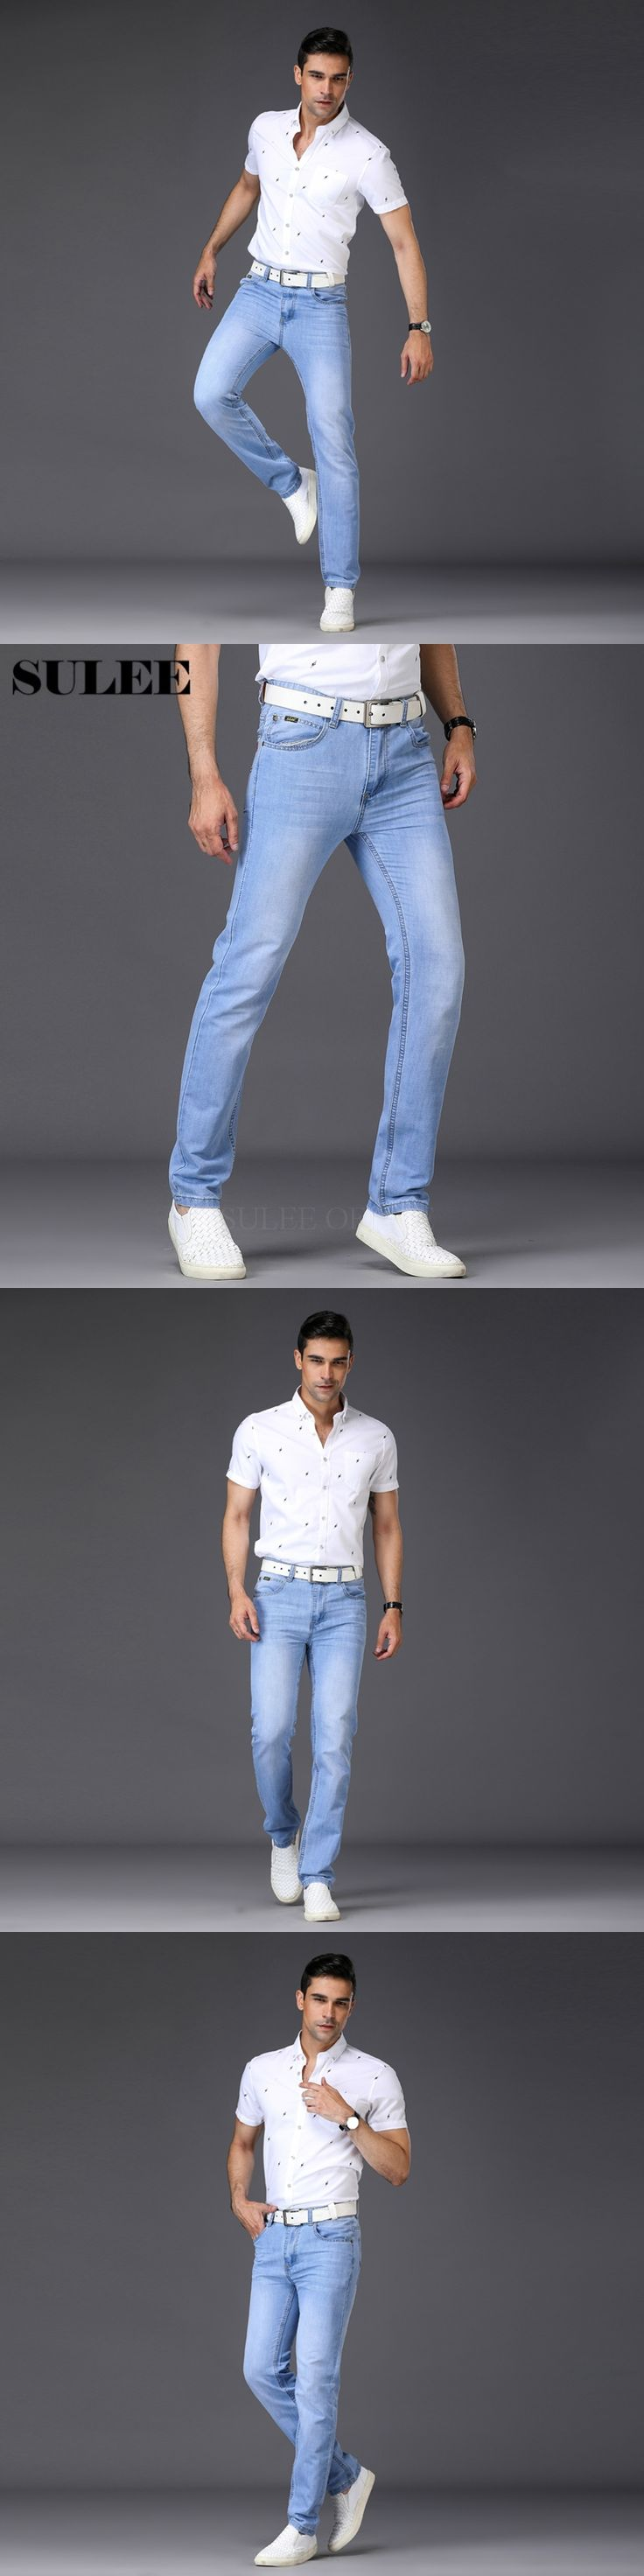 SULEE Brand Skinny Jeans Men Light Weight Thin Classic Jeans Summer Style  Denim Male Pants Brand Spring Autumn Mens Jeans